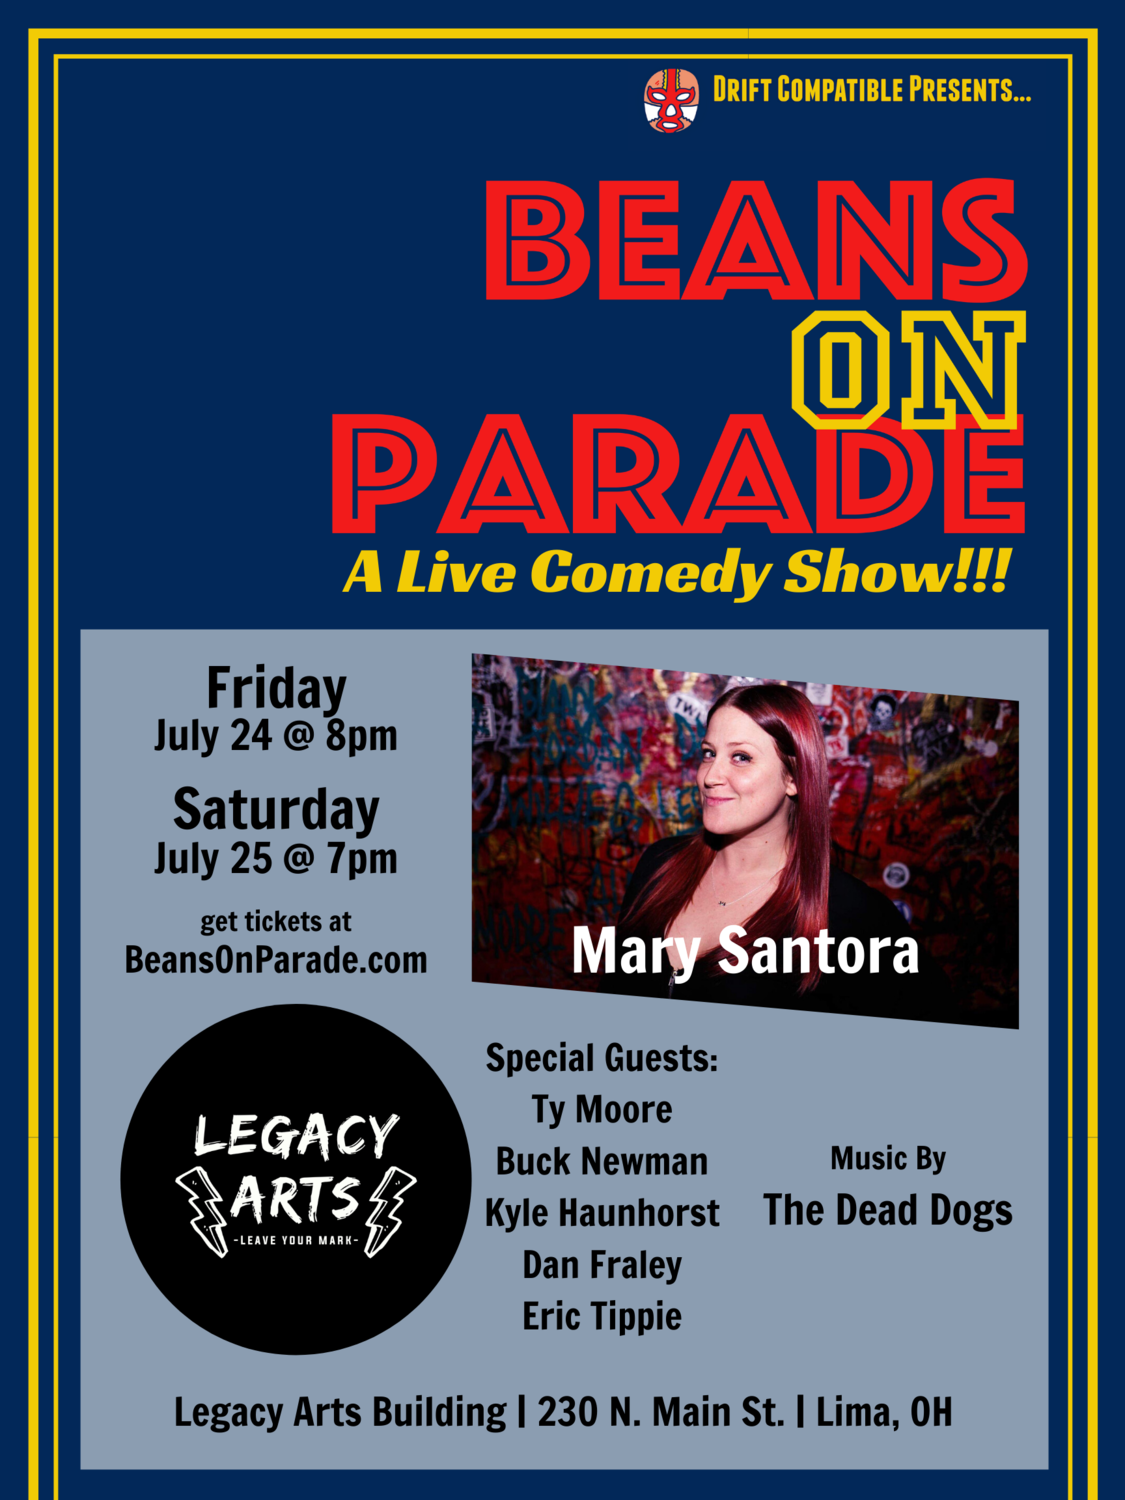 ADVANCE TICKETS - Beans on Parade; July 24-25, 2020